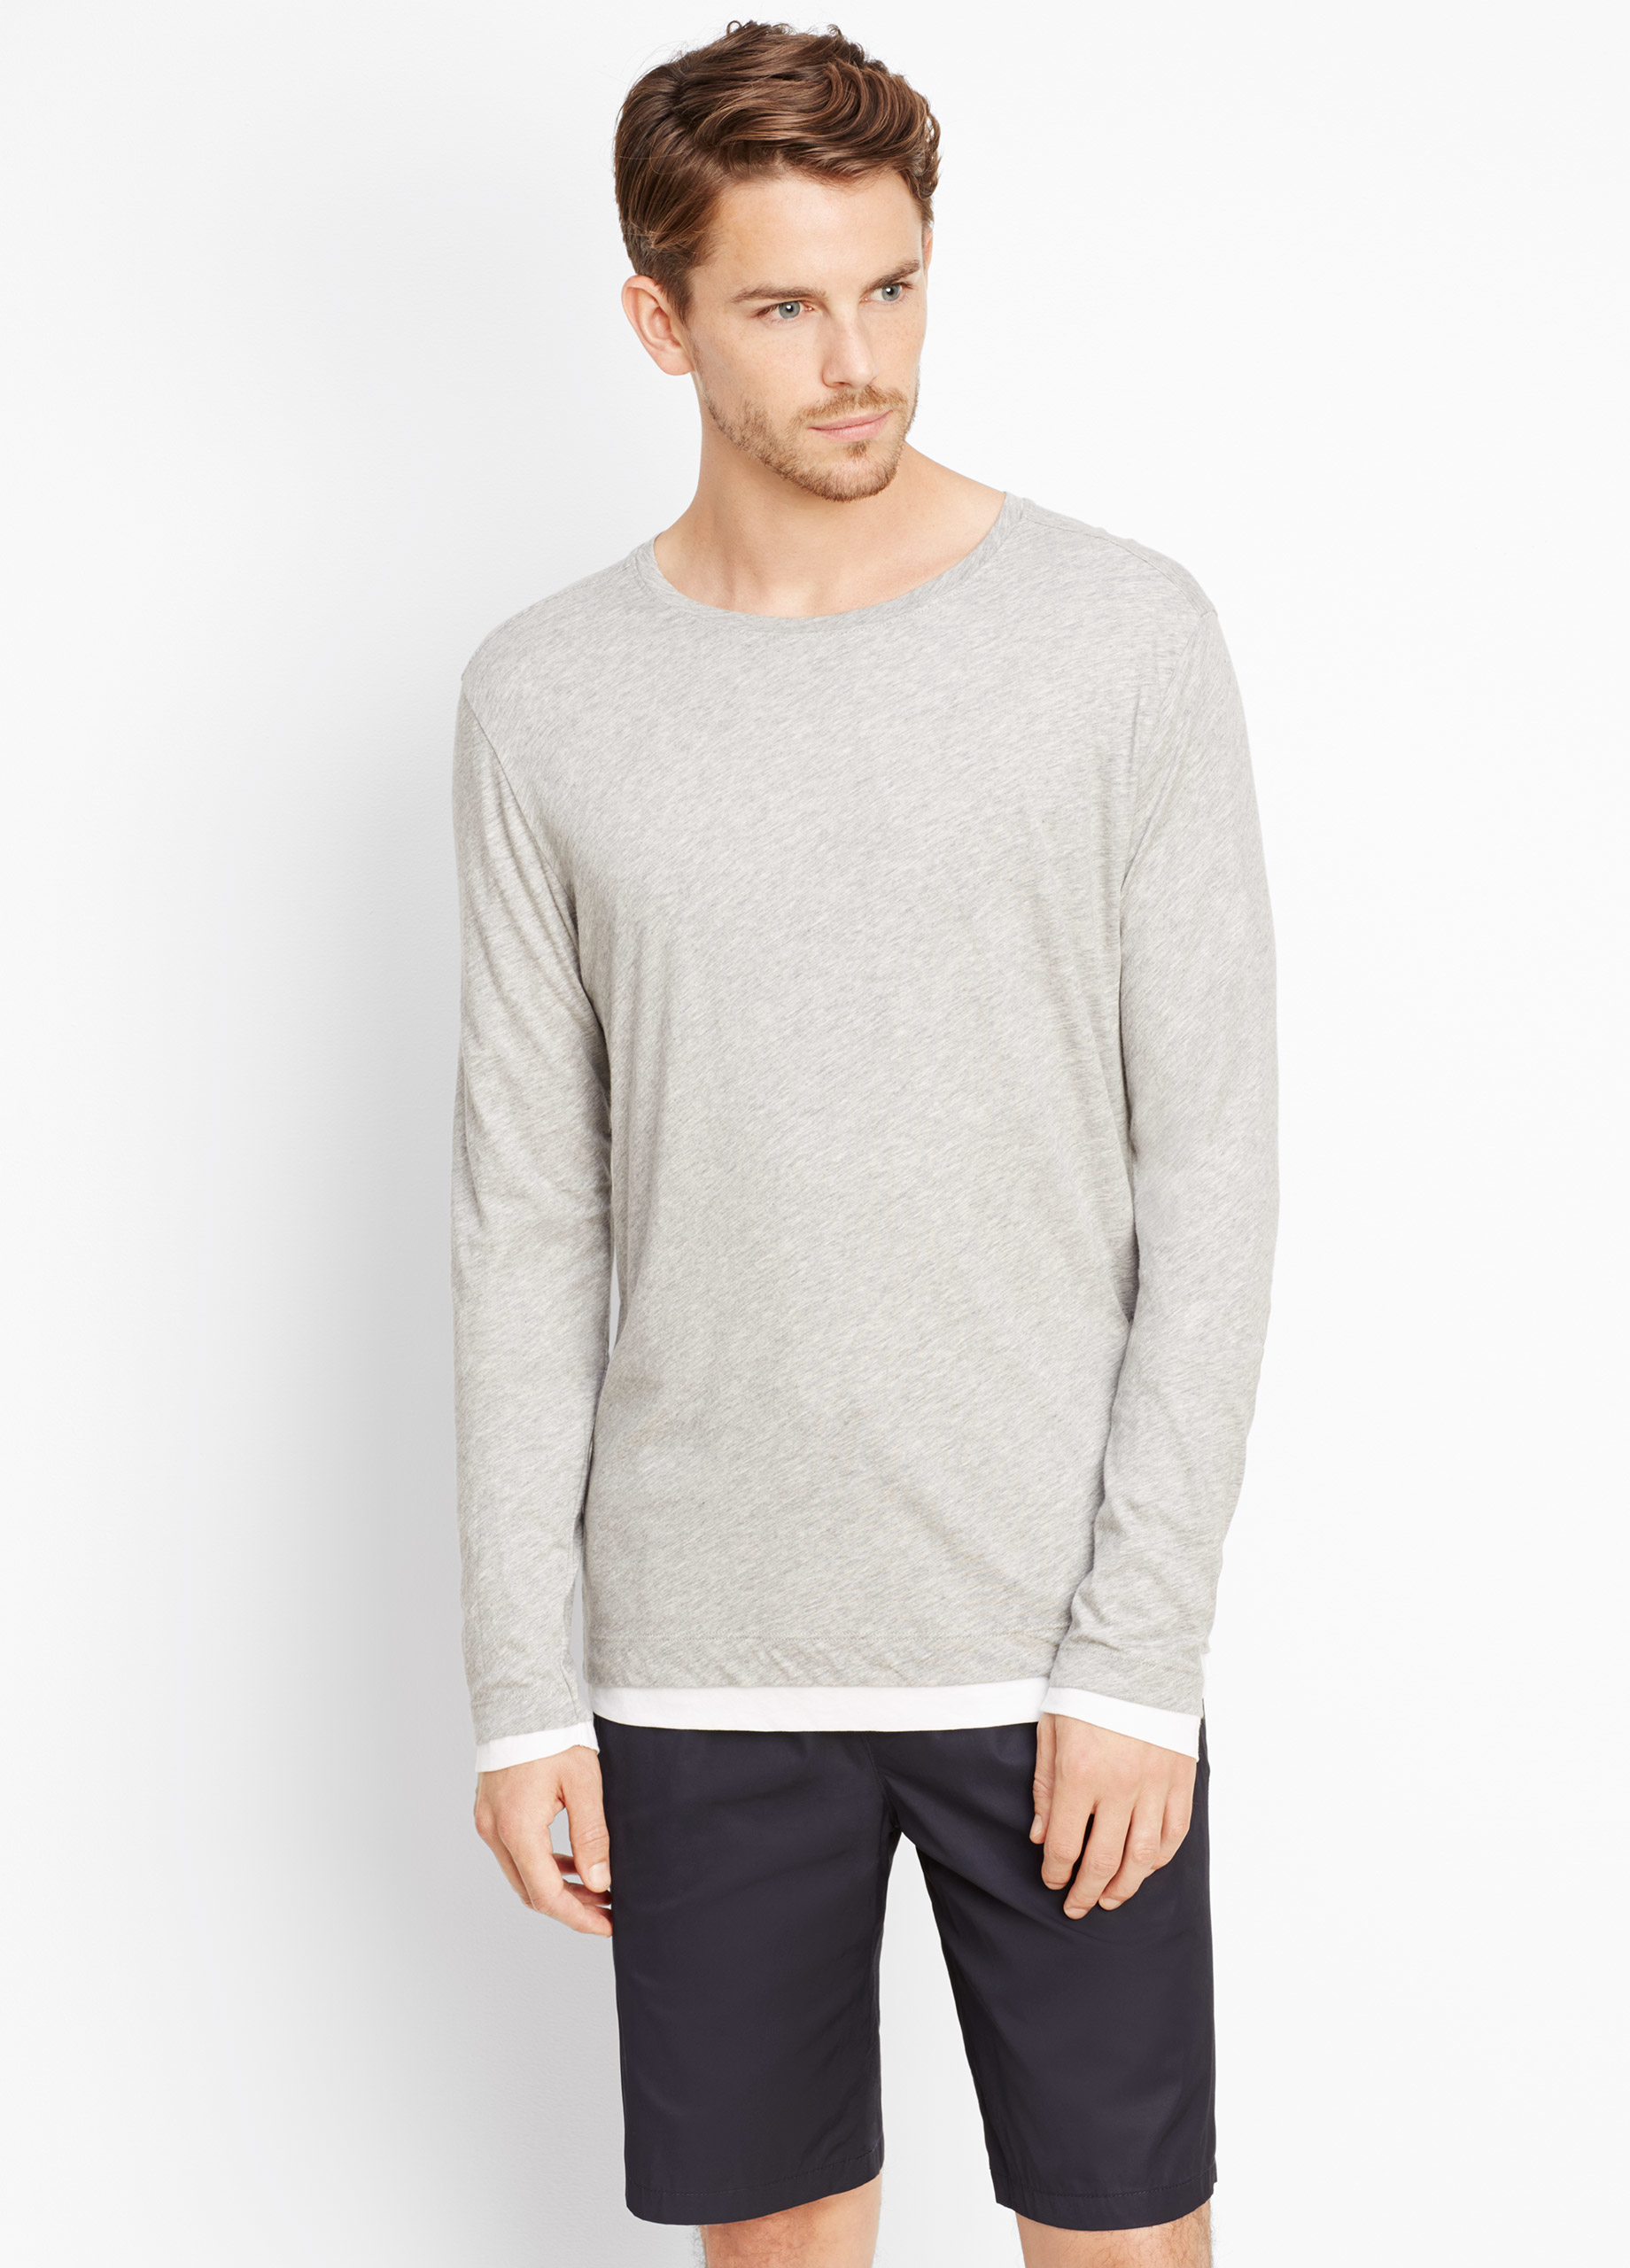 Rated 4 out of 5 by Super Shopper from Pima Cotton Scoop long sleeve